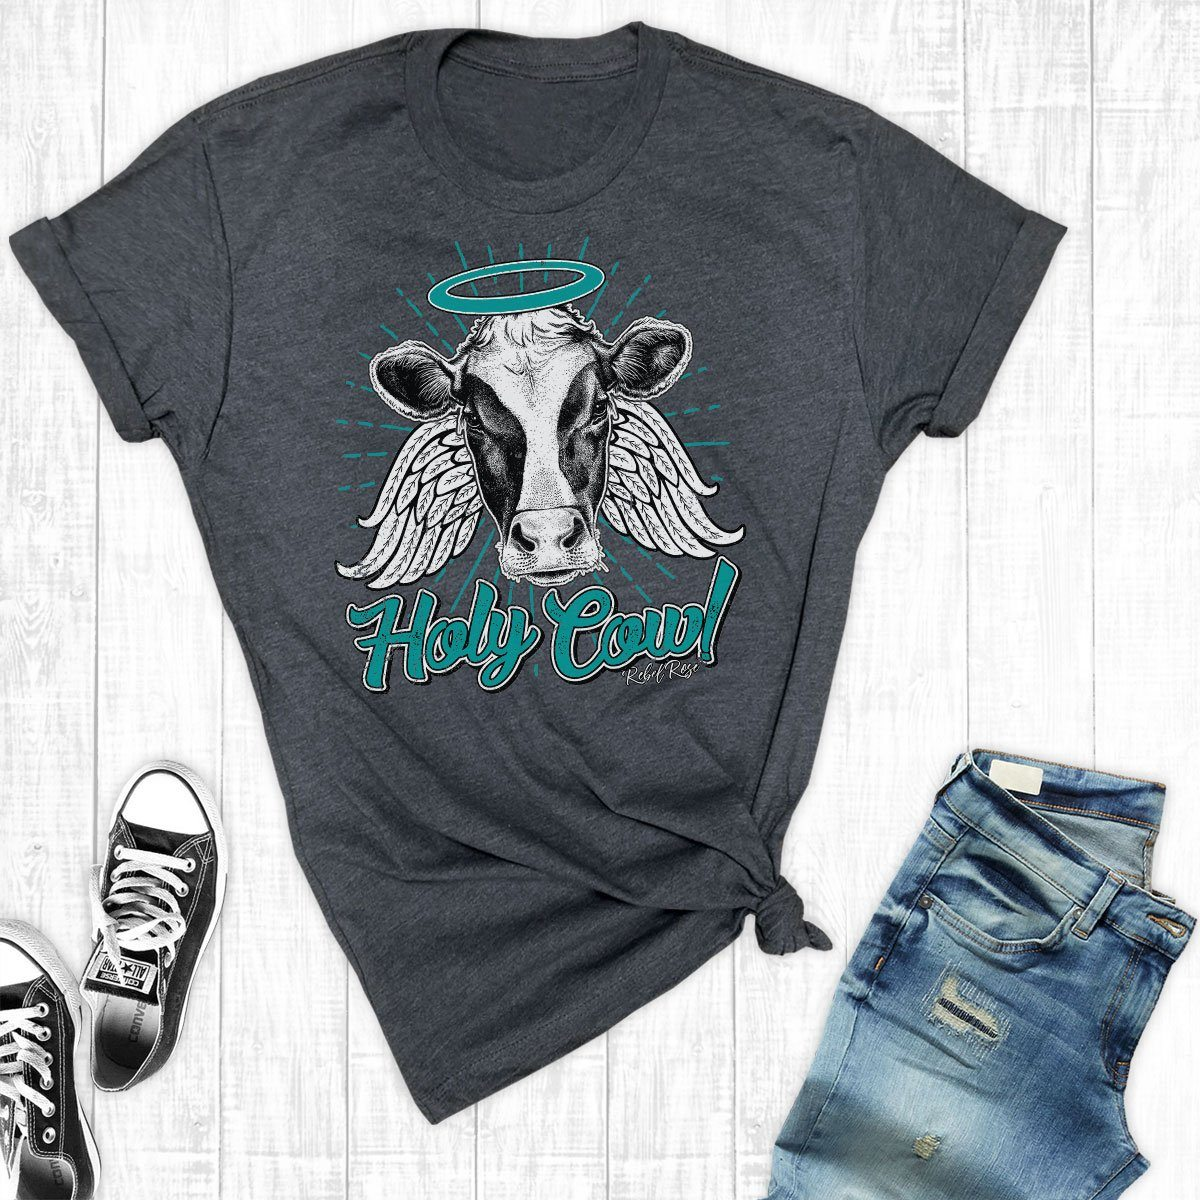 T-Shirts - Holy Cow!